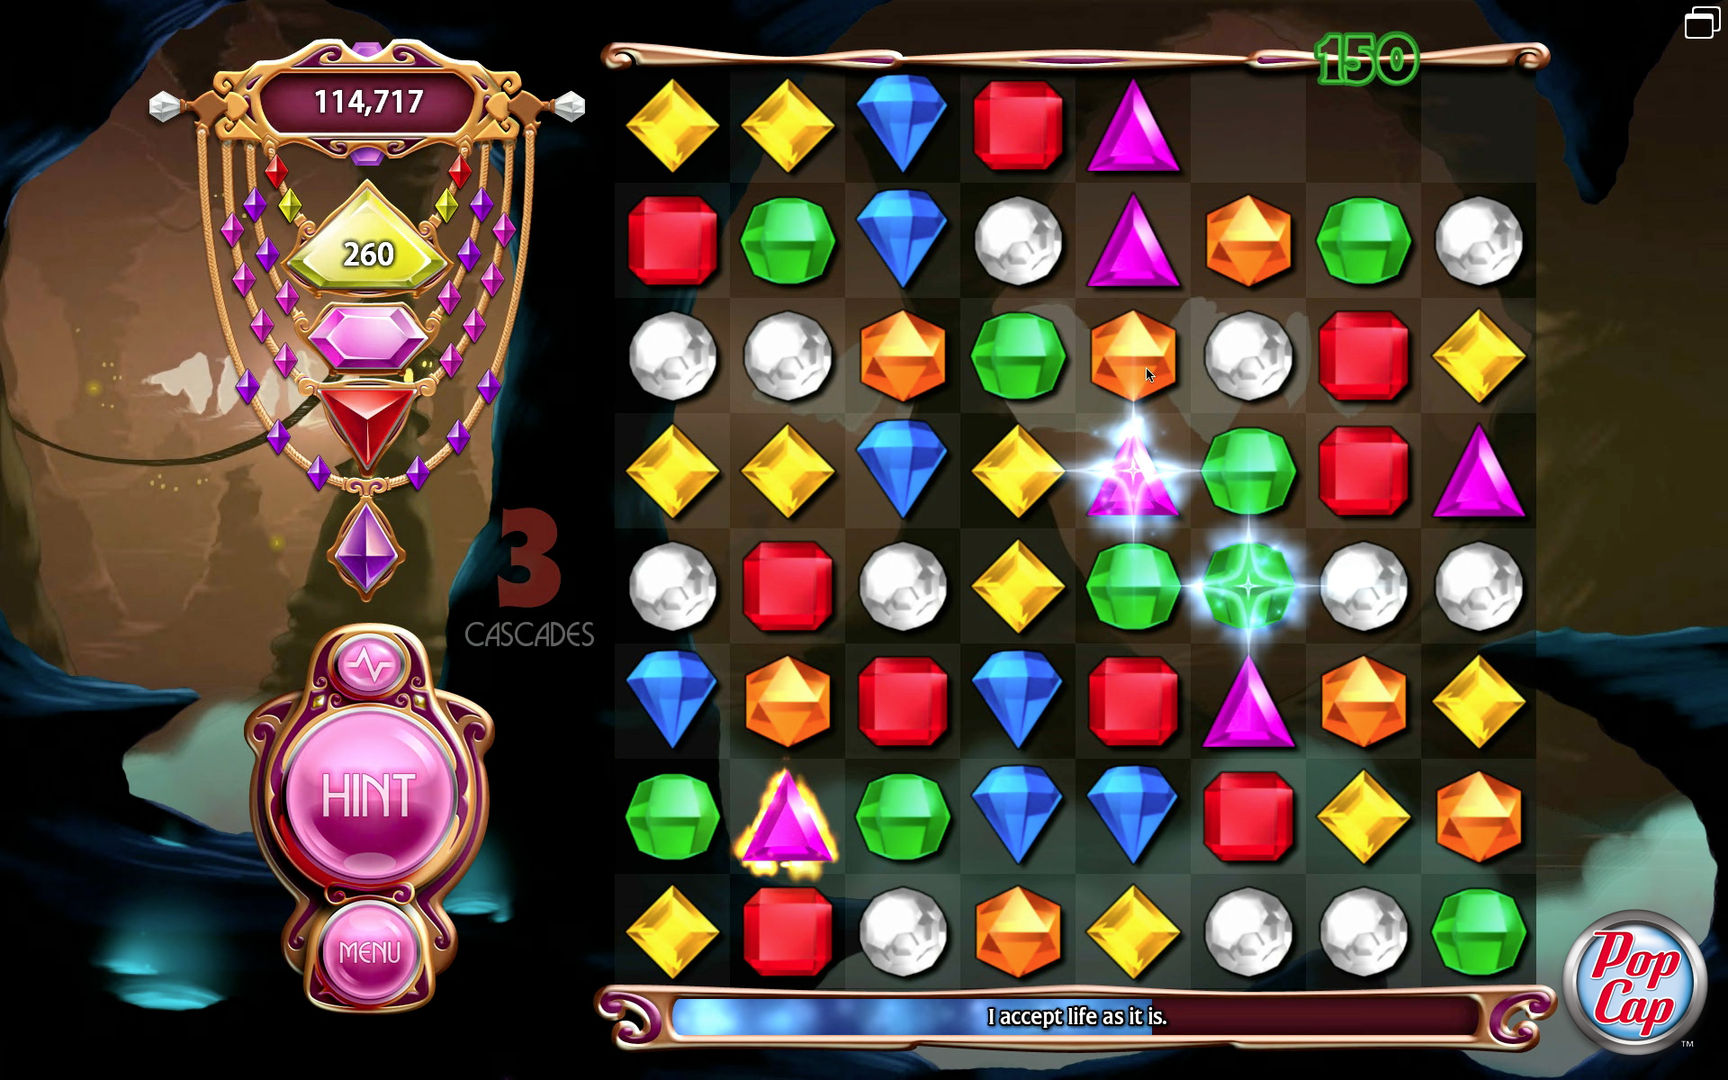 bejeweled 3 free download full game for pc